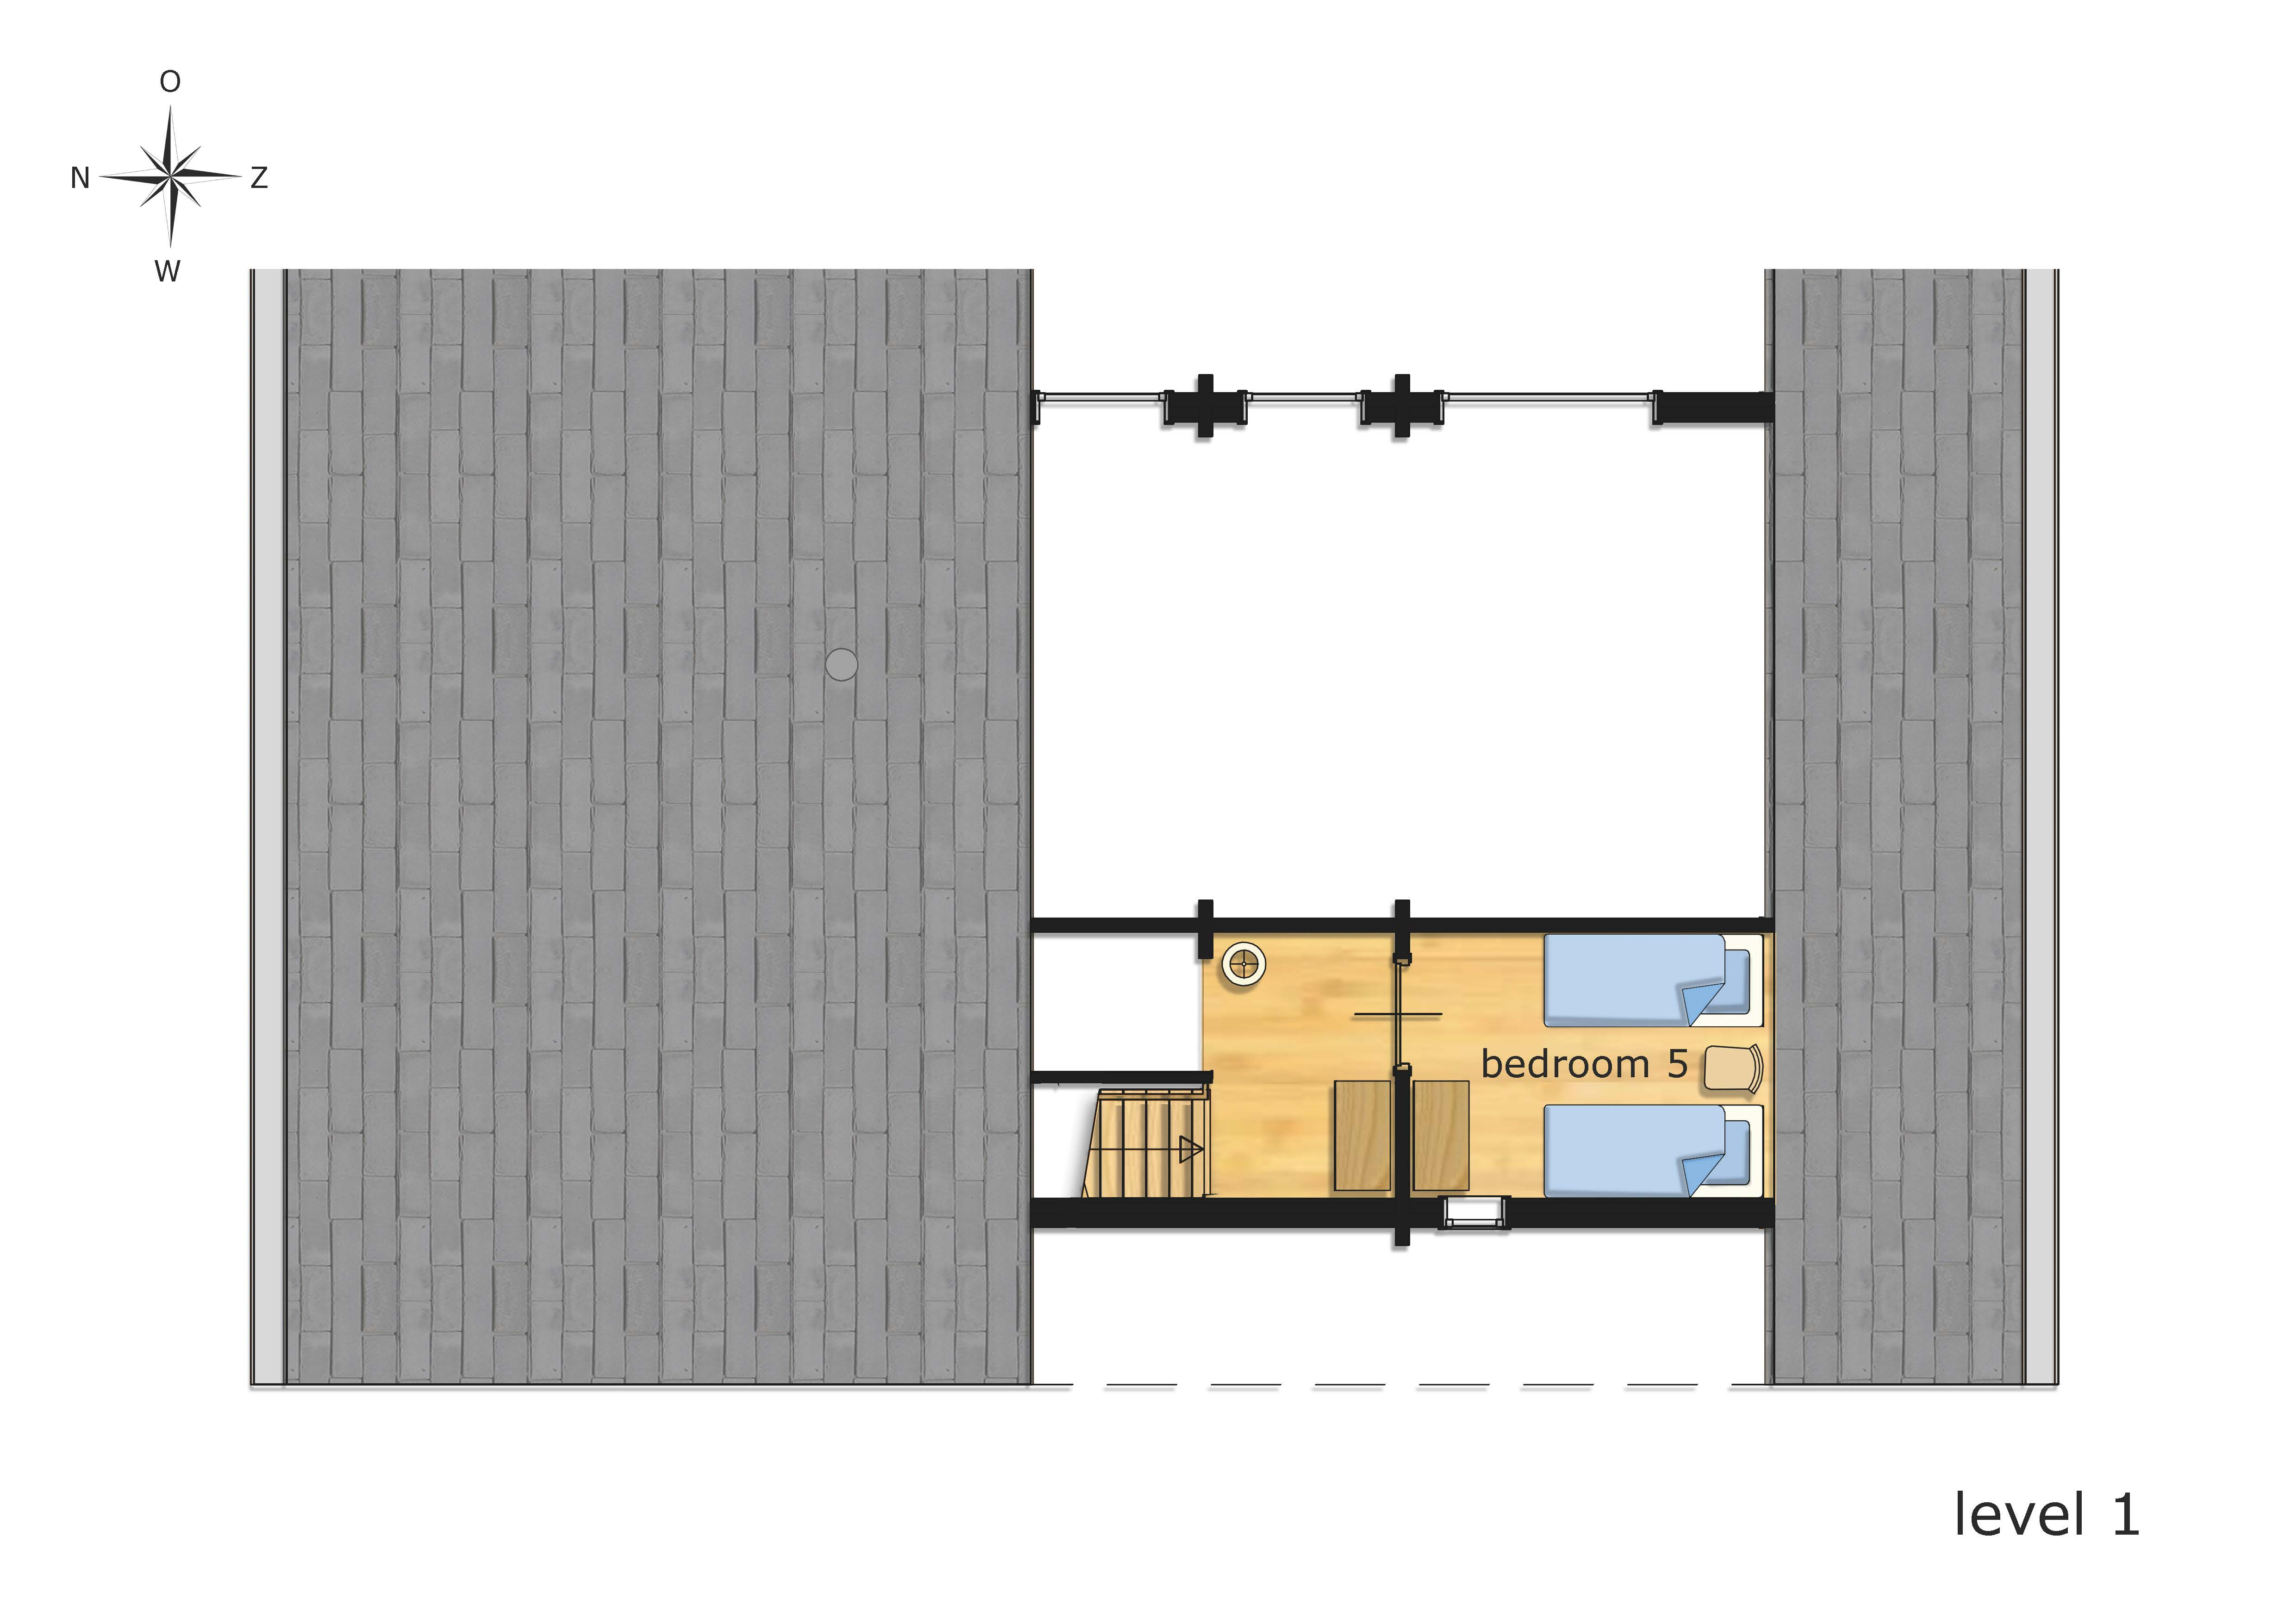 Holiday Home Floor Plan: level +1 (attic bedroom).